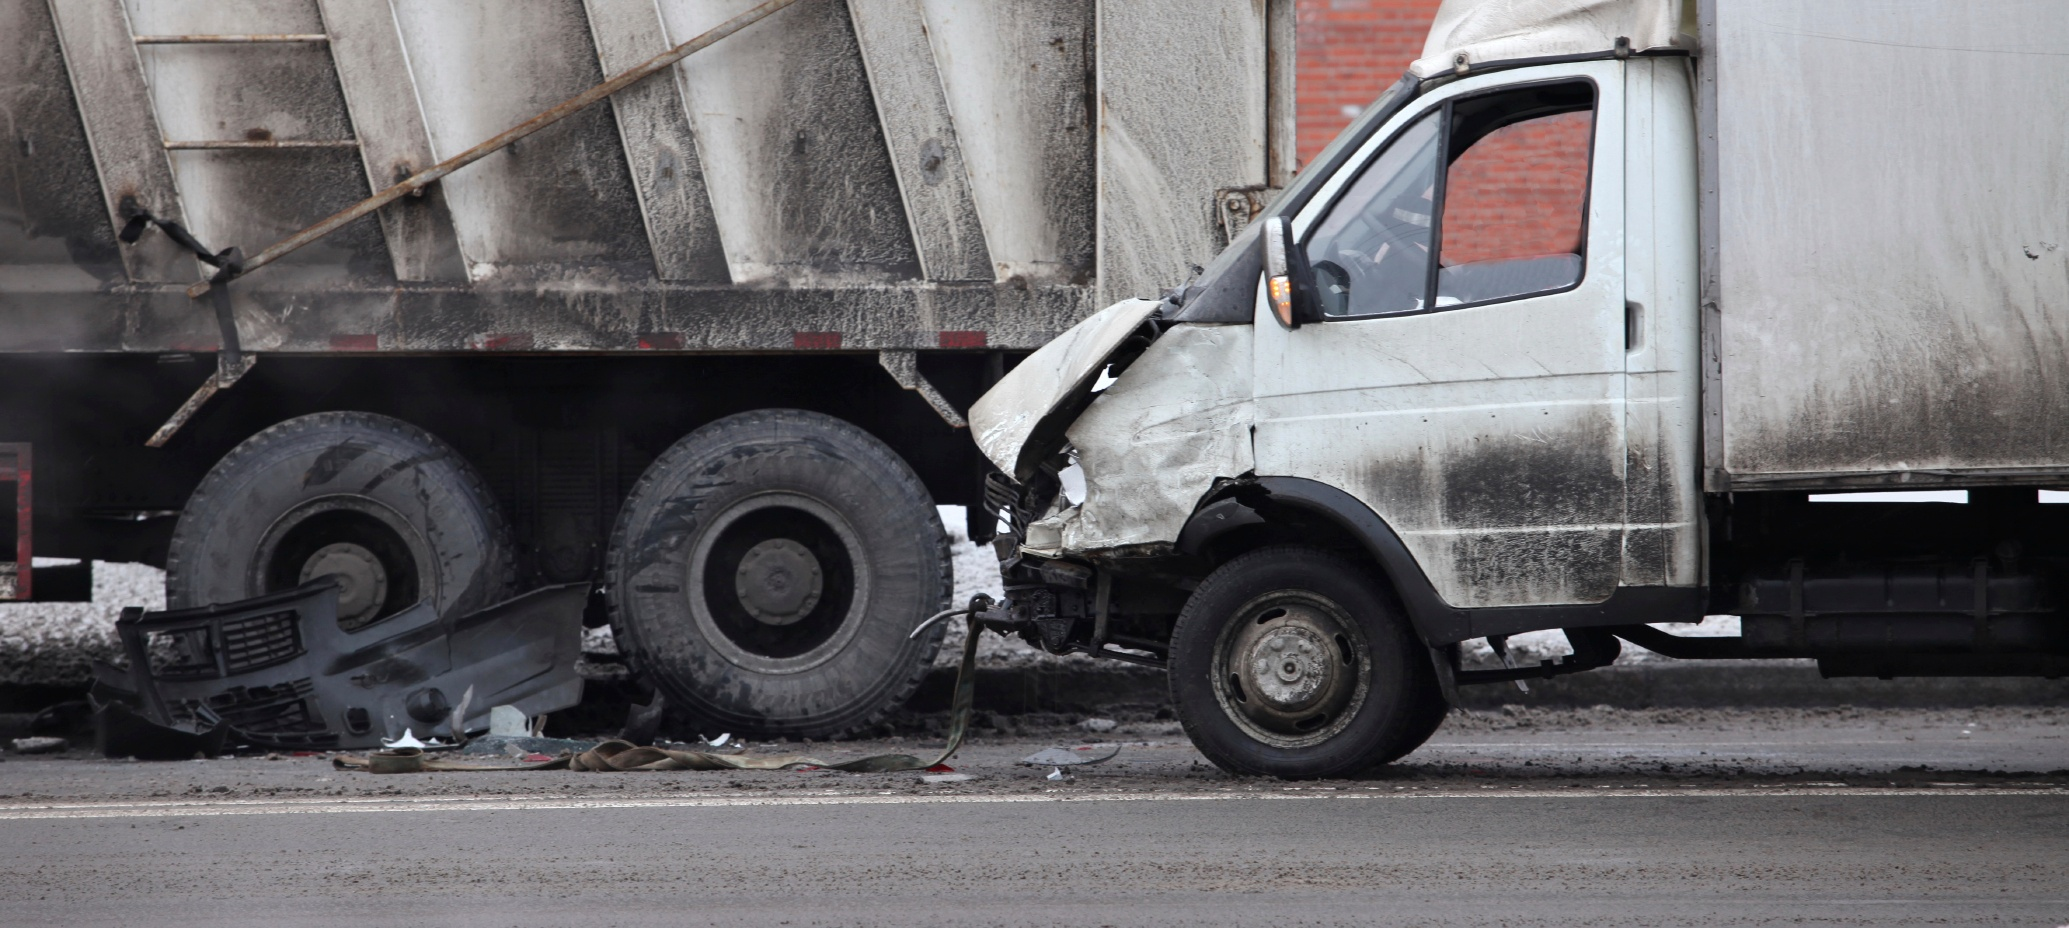 Truck getting rear-ended by a box truck